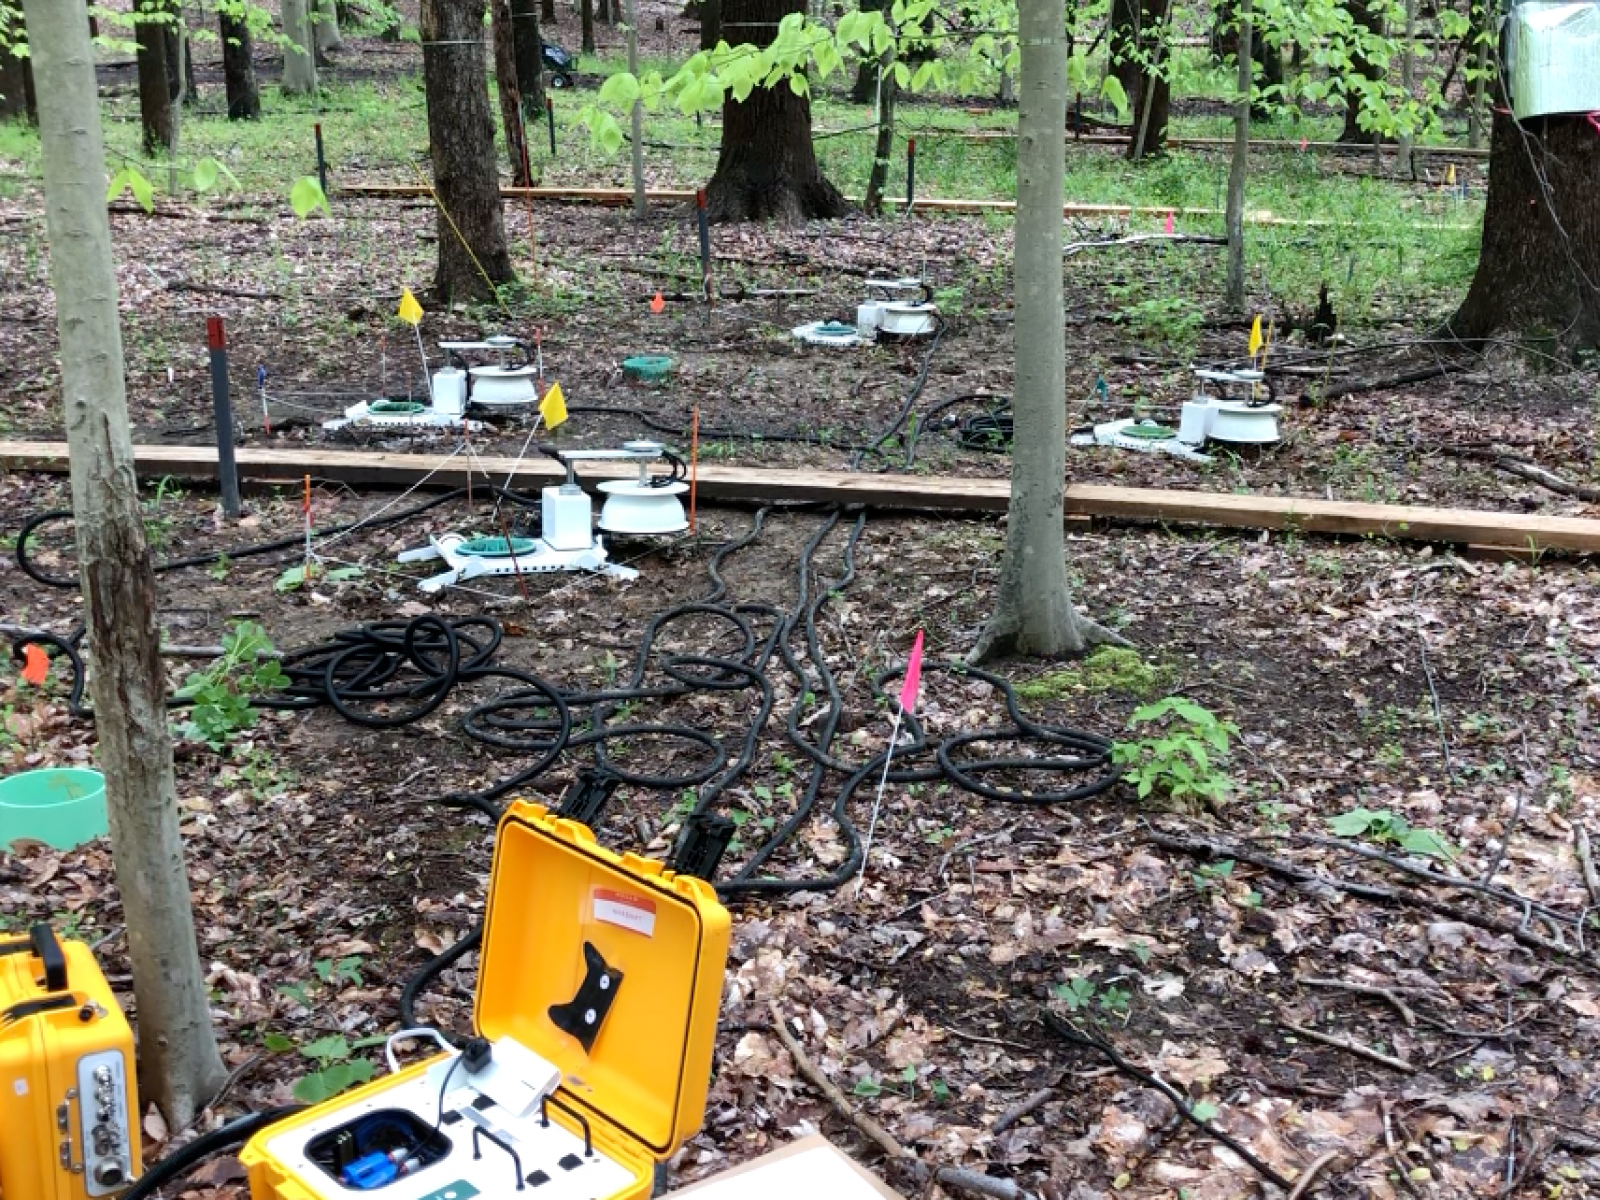 Box-like instruments on the ground near trees